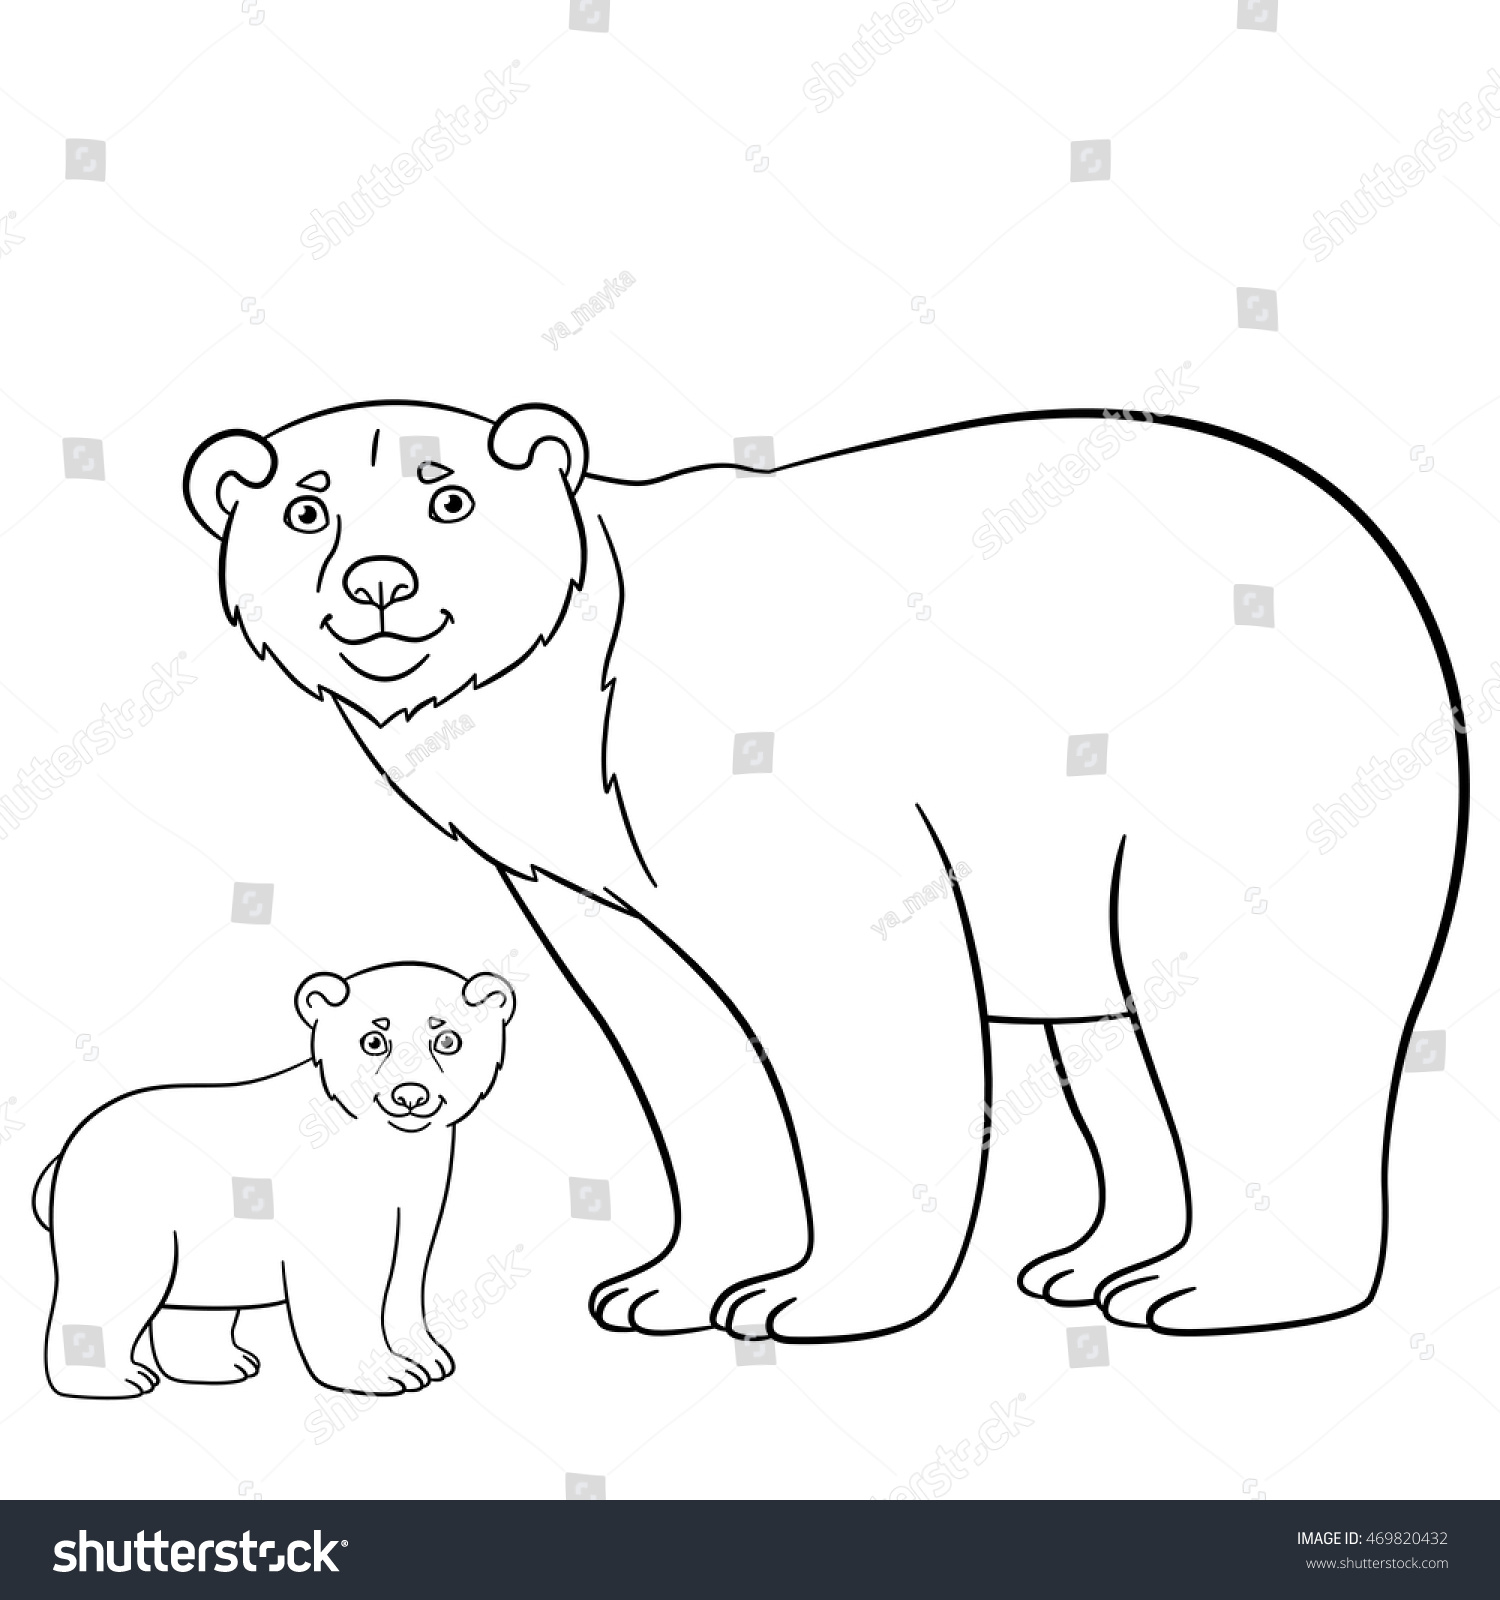 Coloring pages. Mother bear stands with her little cute baby and ...